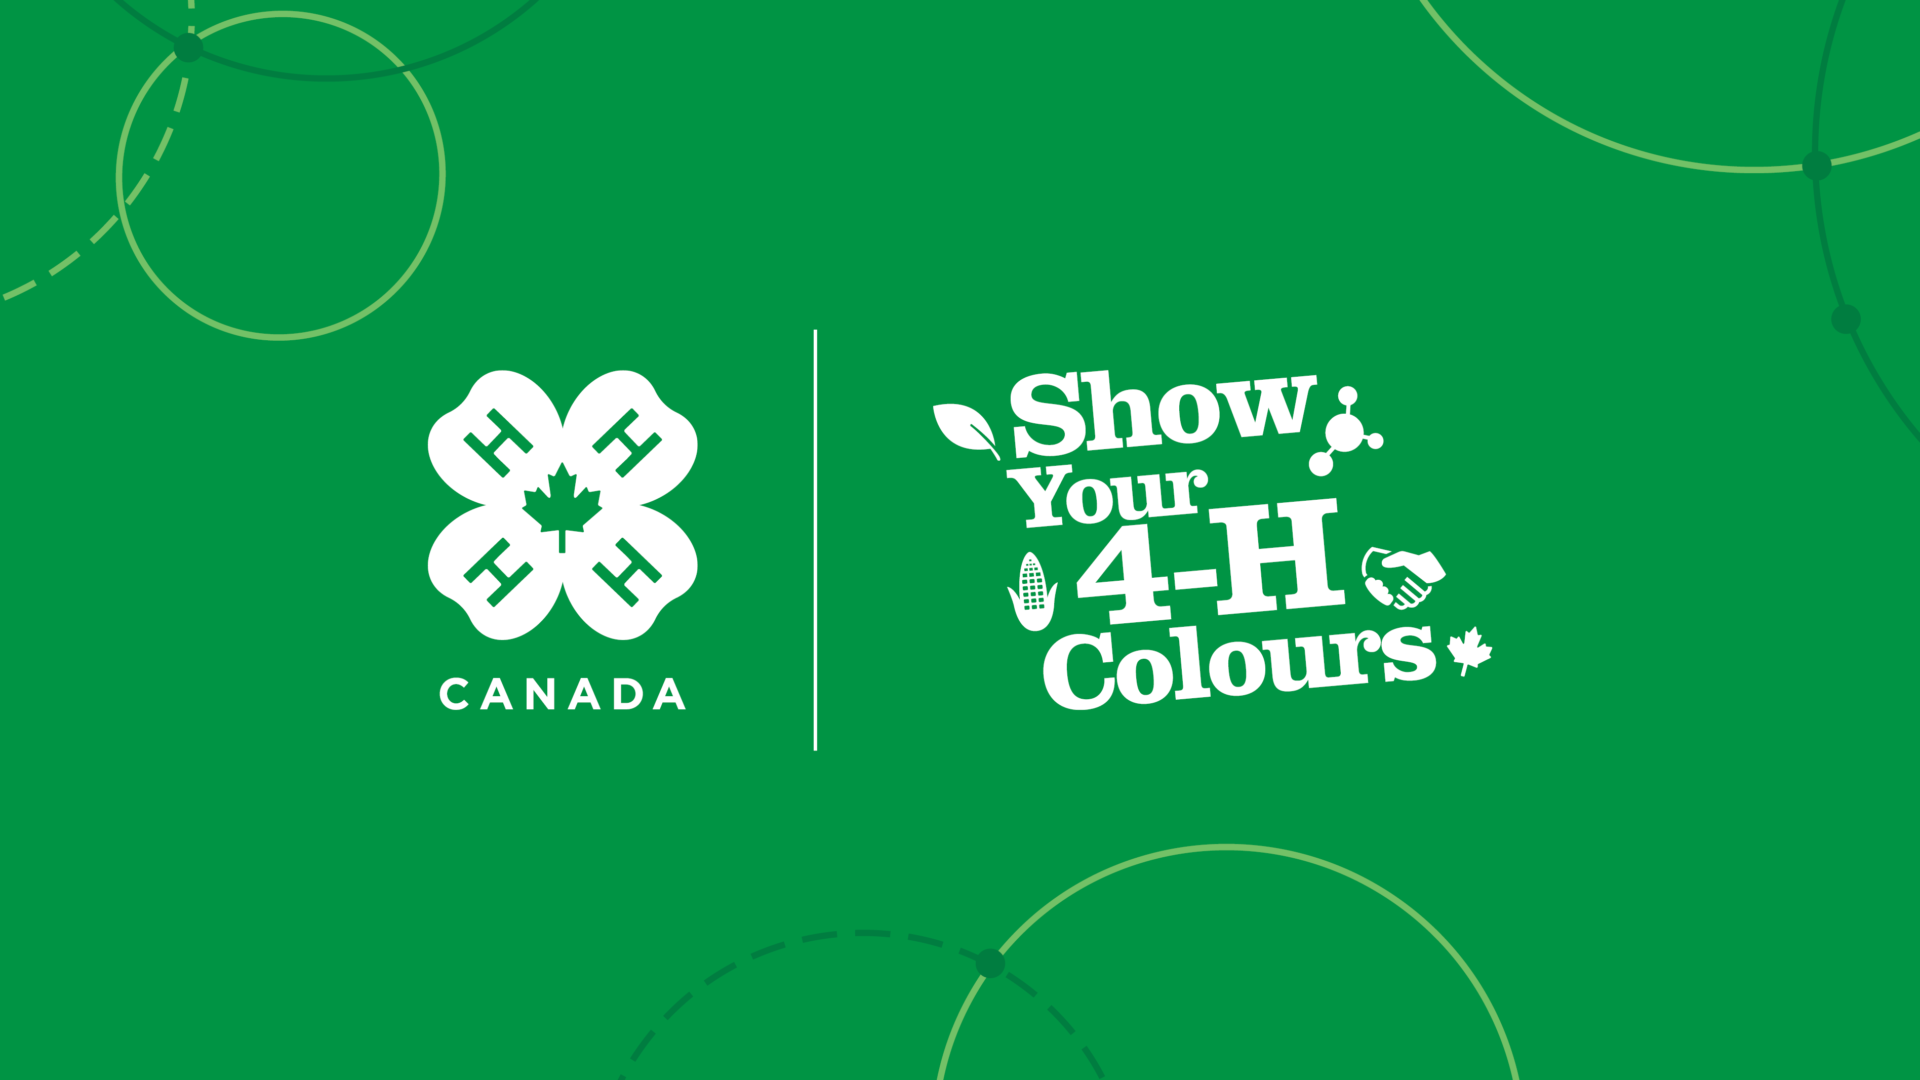 Show Your 4-H Colours